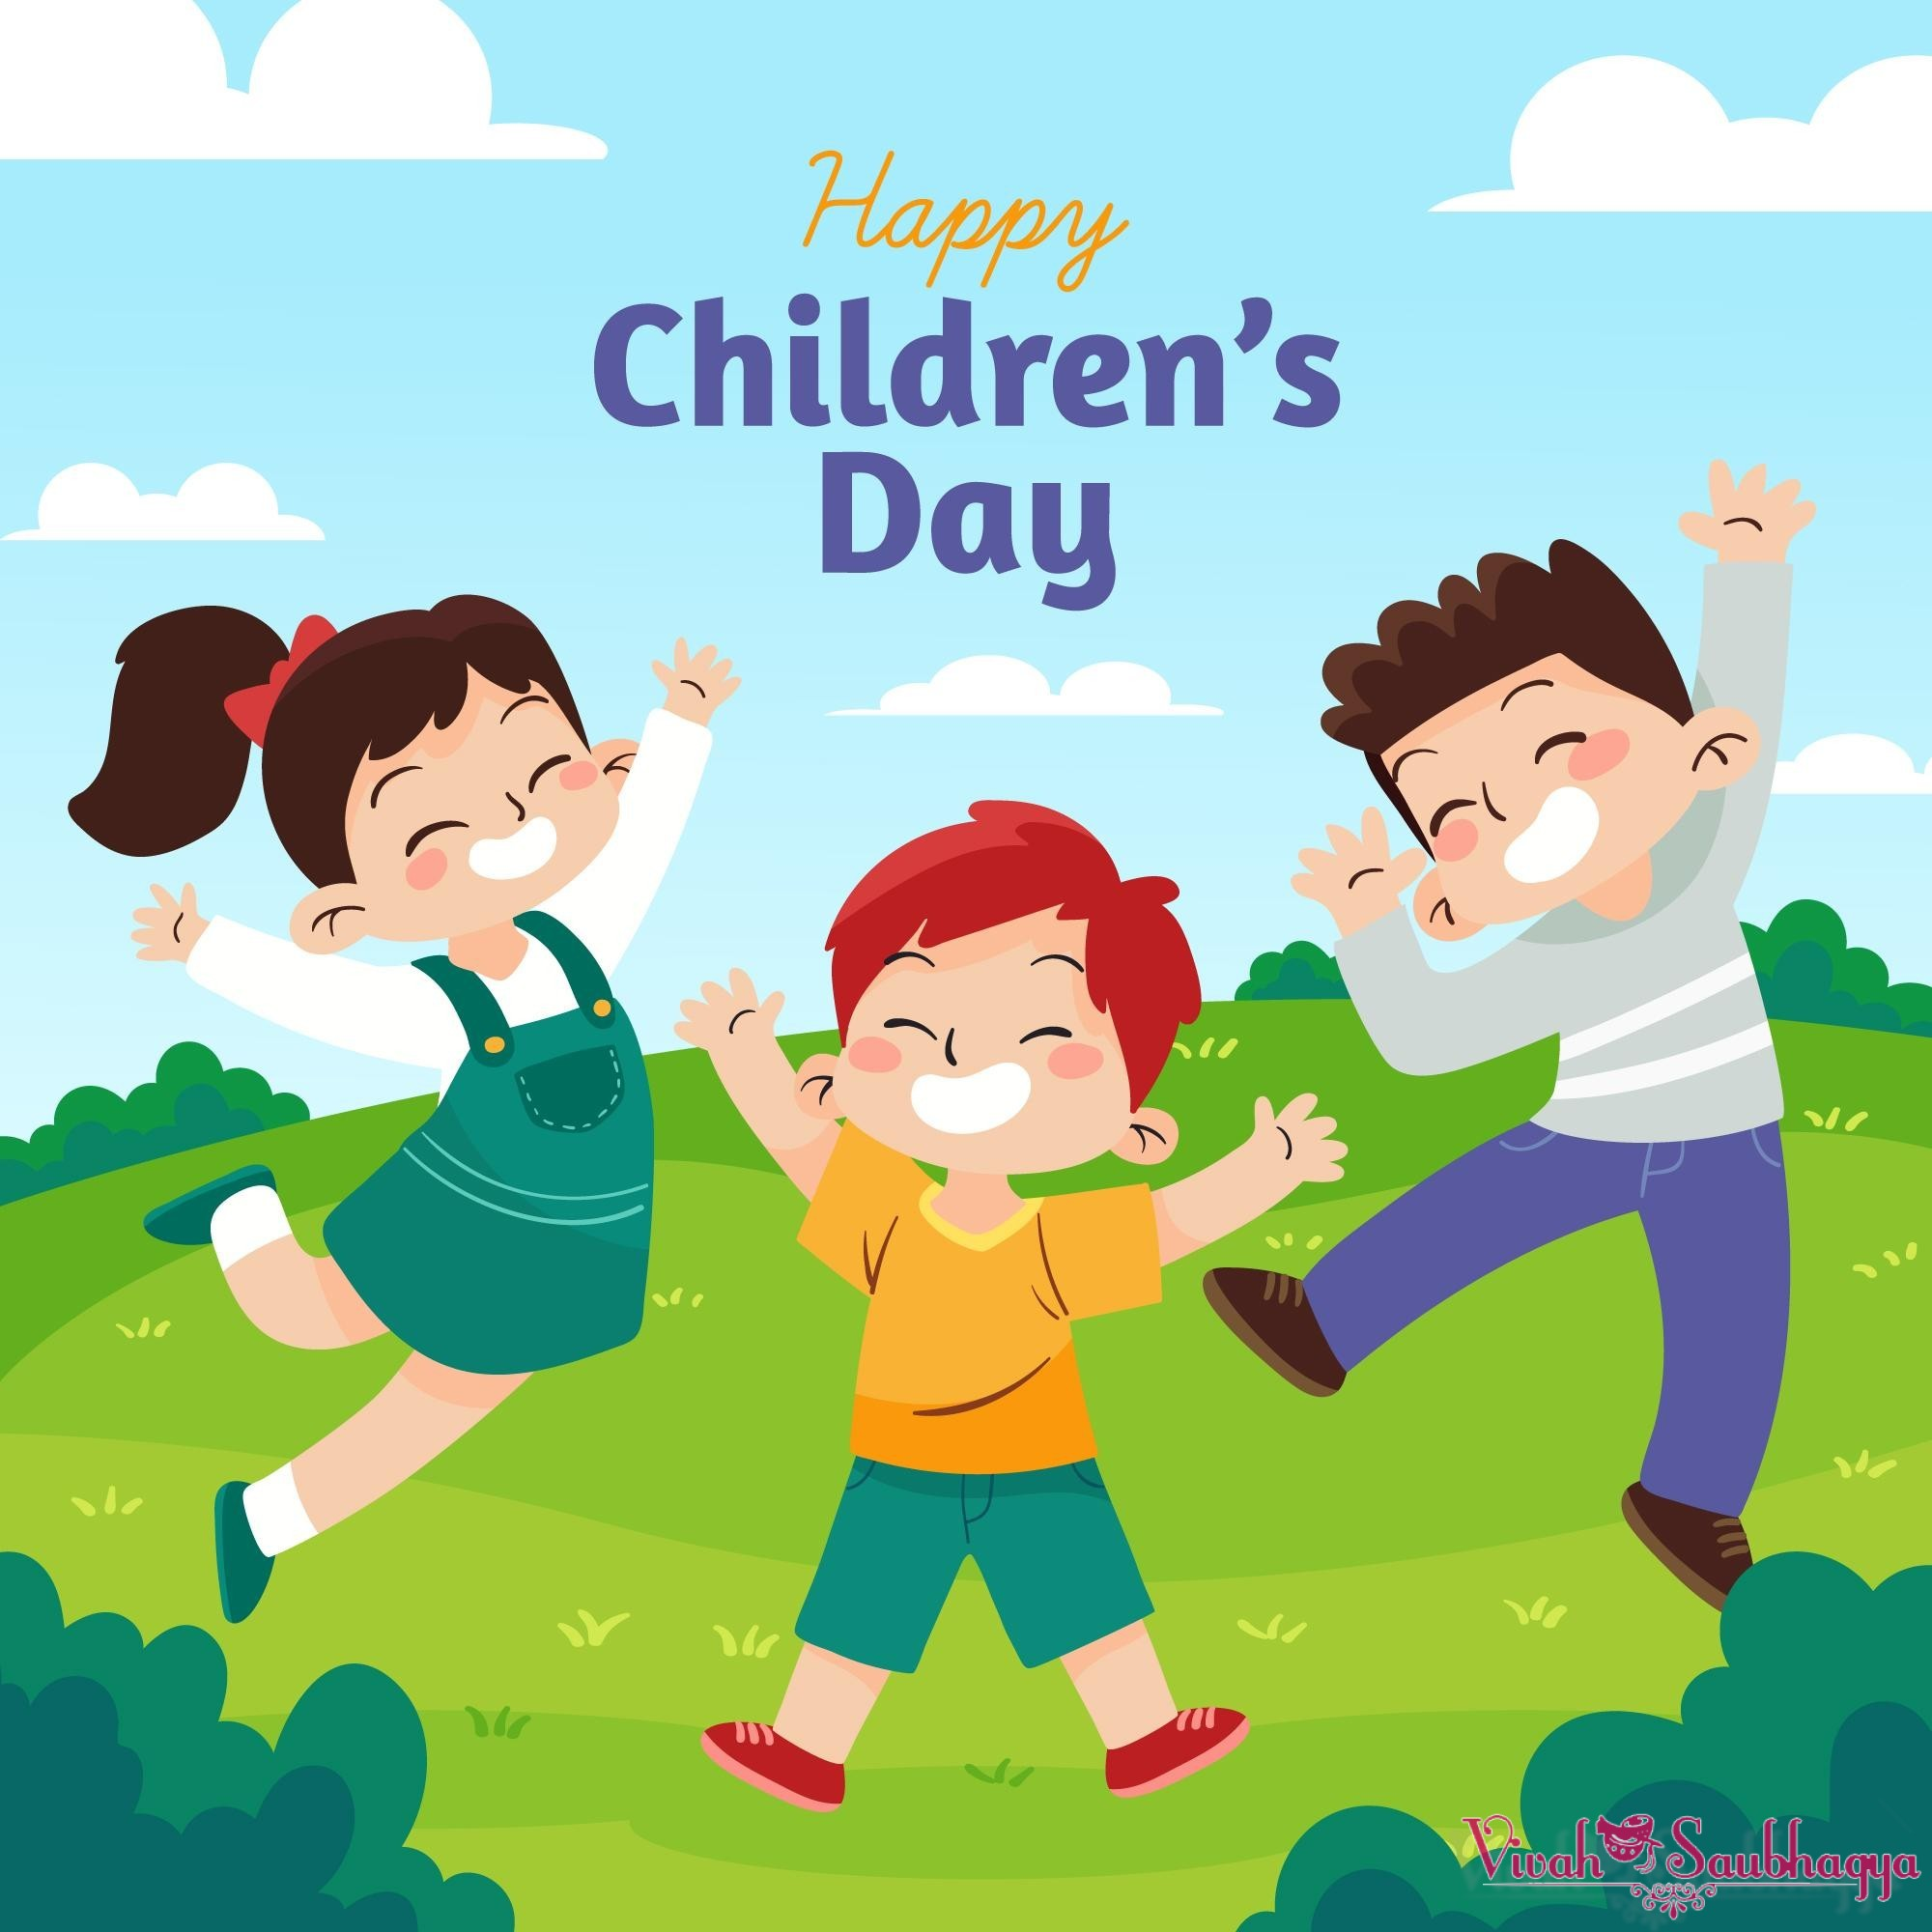 Children's Day 2020 – Jawaharlal Nehru Jayanti Celebrations